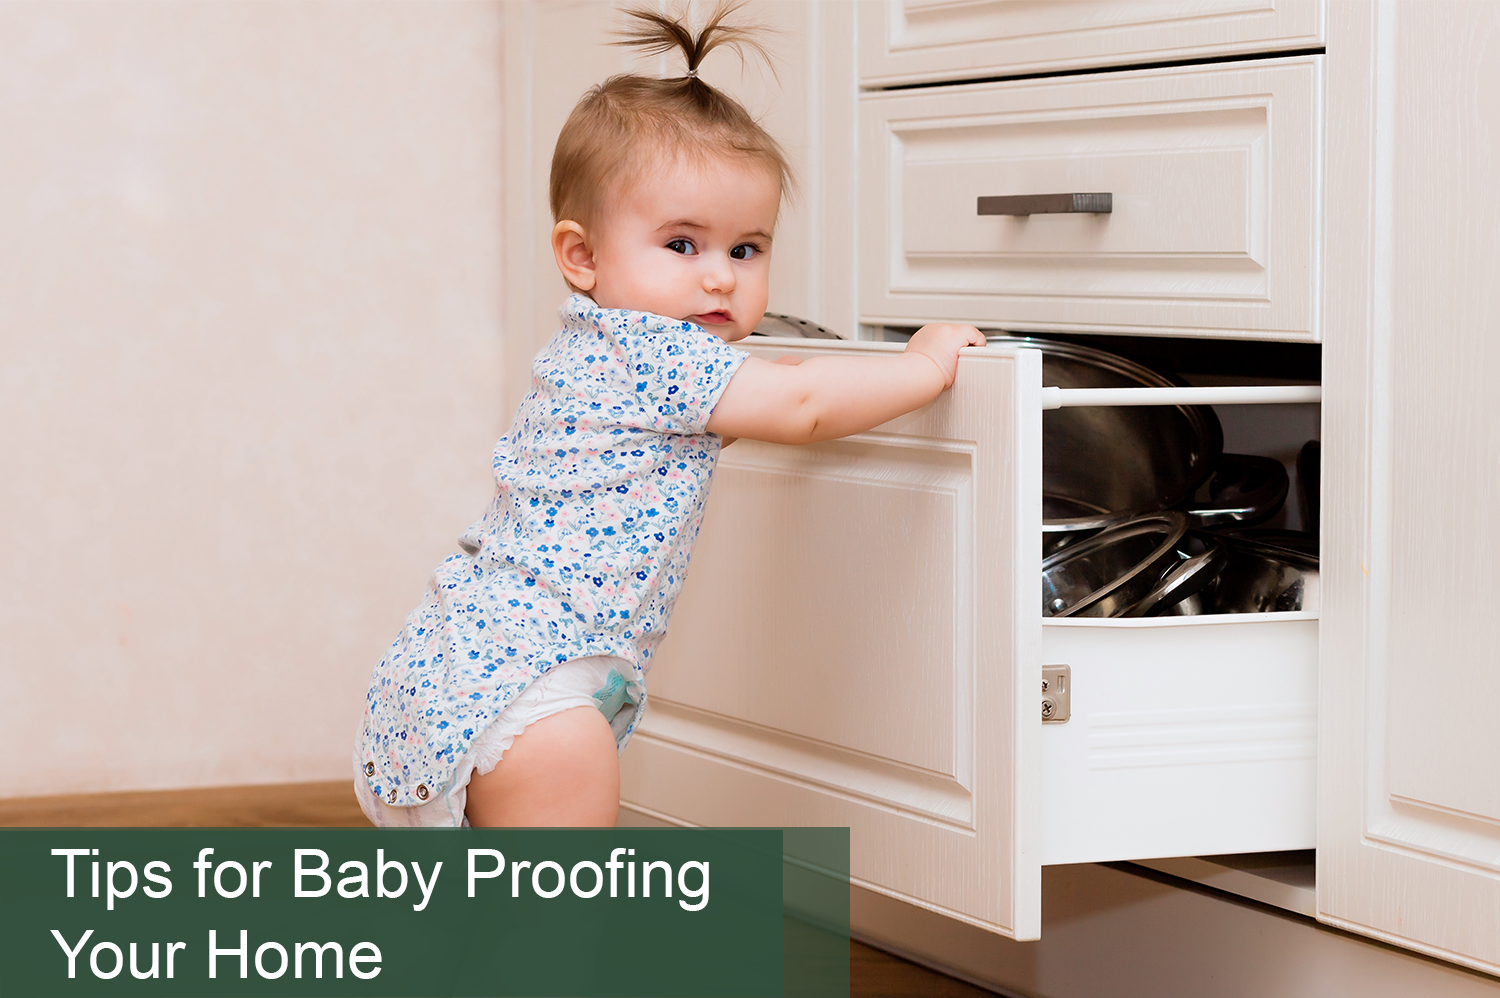 Baby girl in onesie opening kitchen cabinet; in need of baby proofing your home.